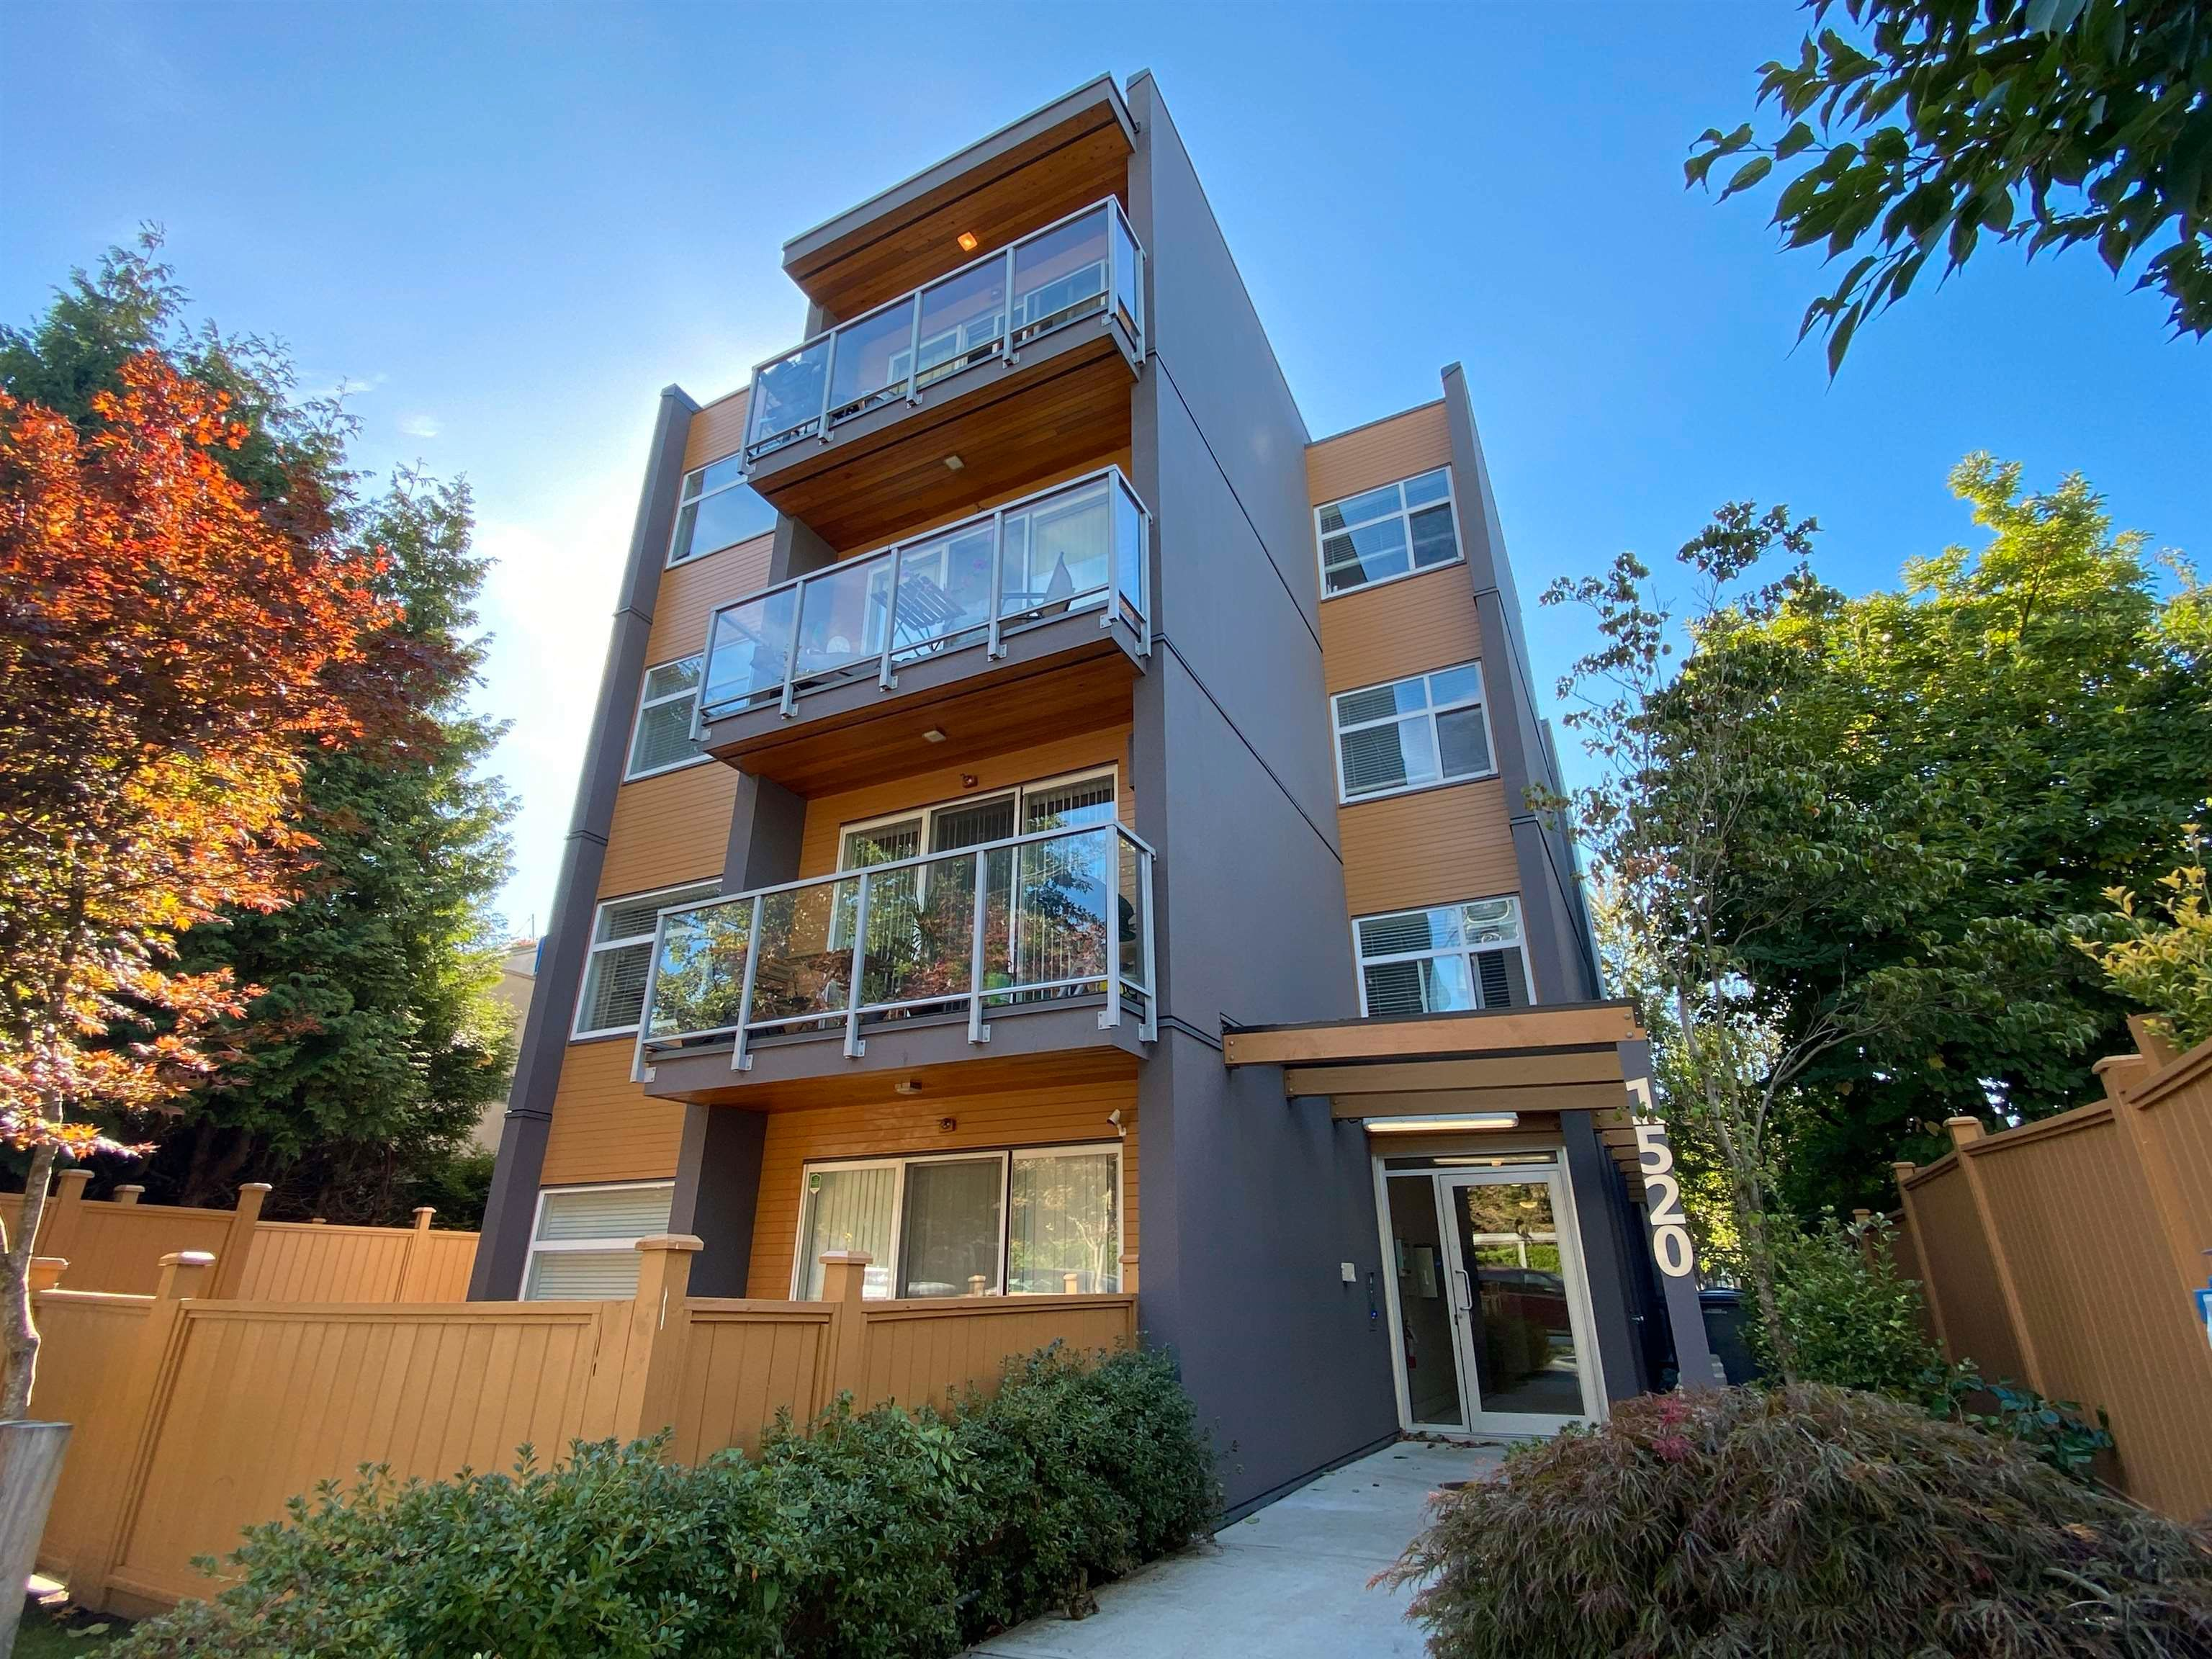 """Main Photo: 1520 AVERY Avenue in Vancouver: Marpole Multi-Family Commercial for sale in """"AVERY"""" (Vancouver West)  : MLS®# C8040231"""